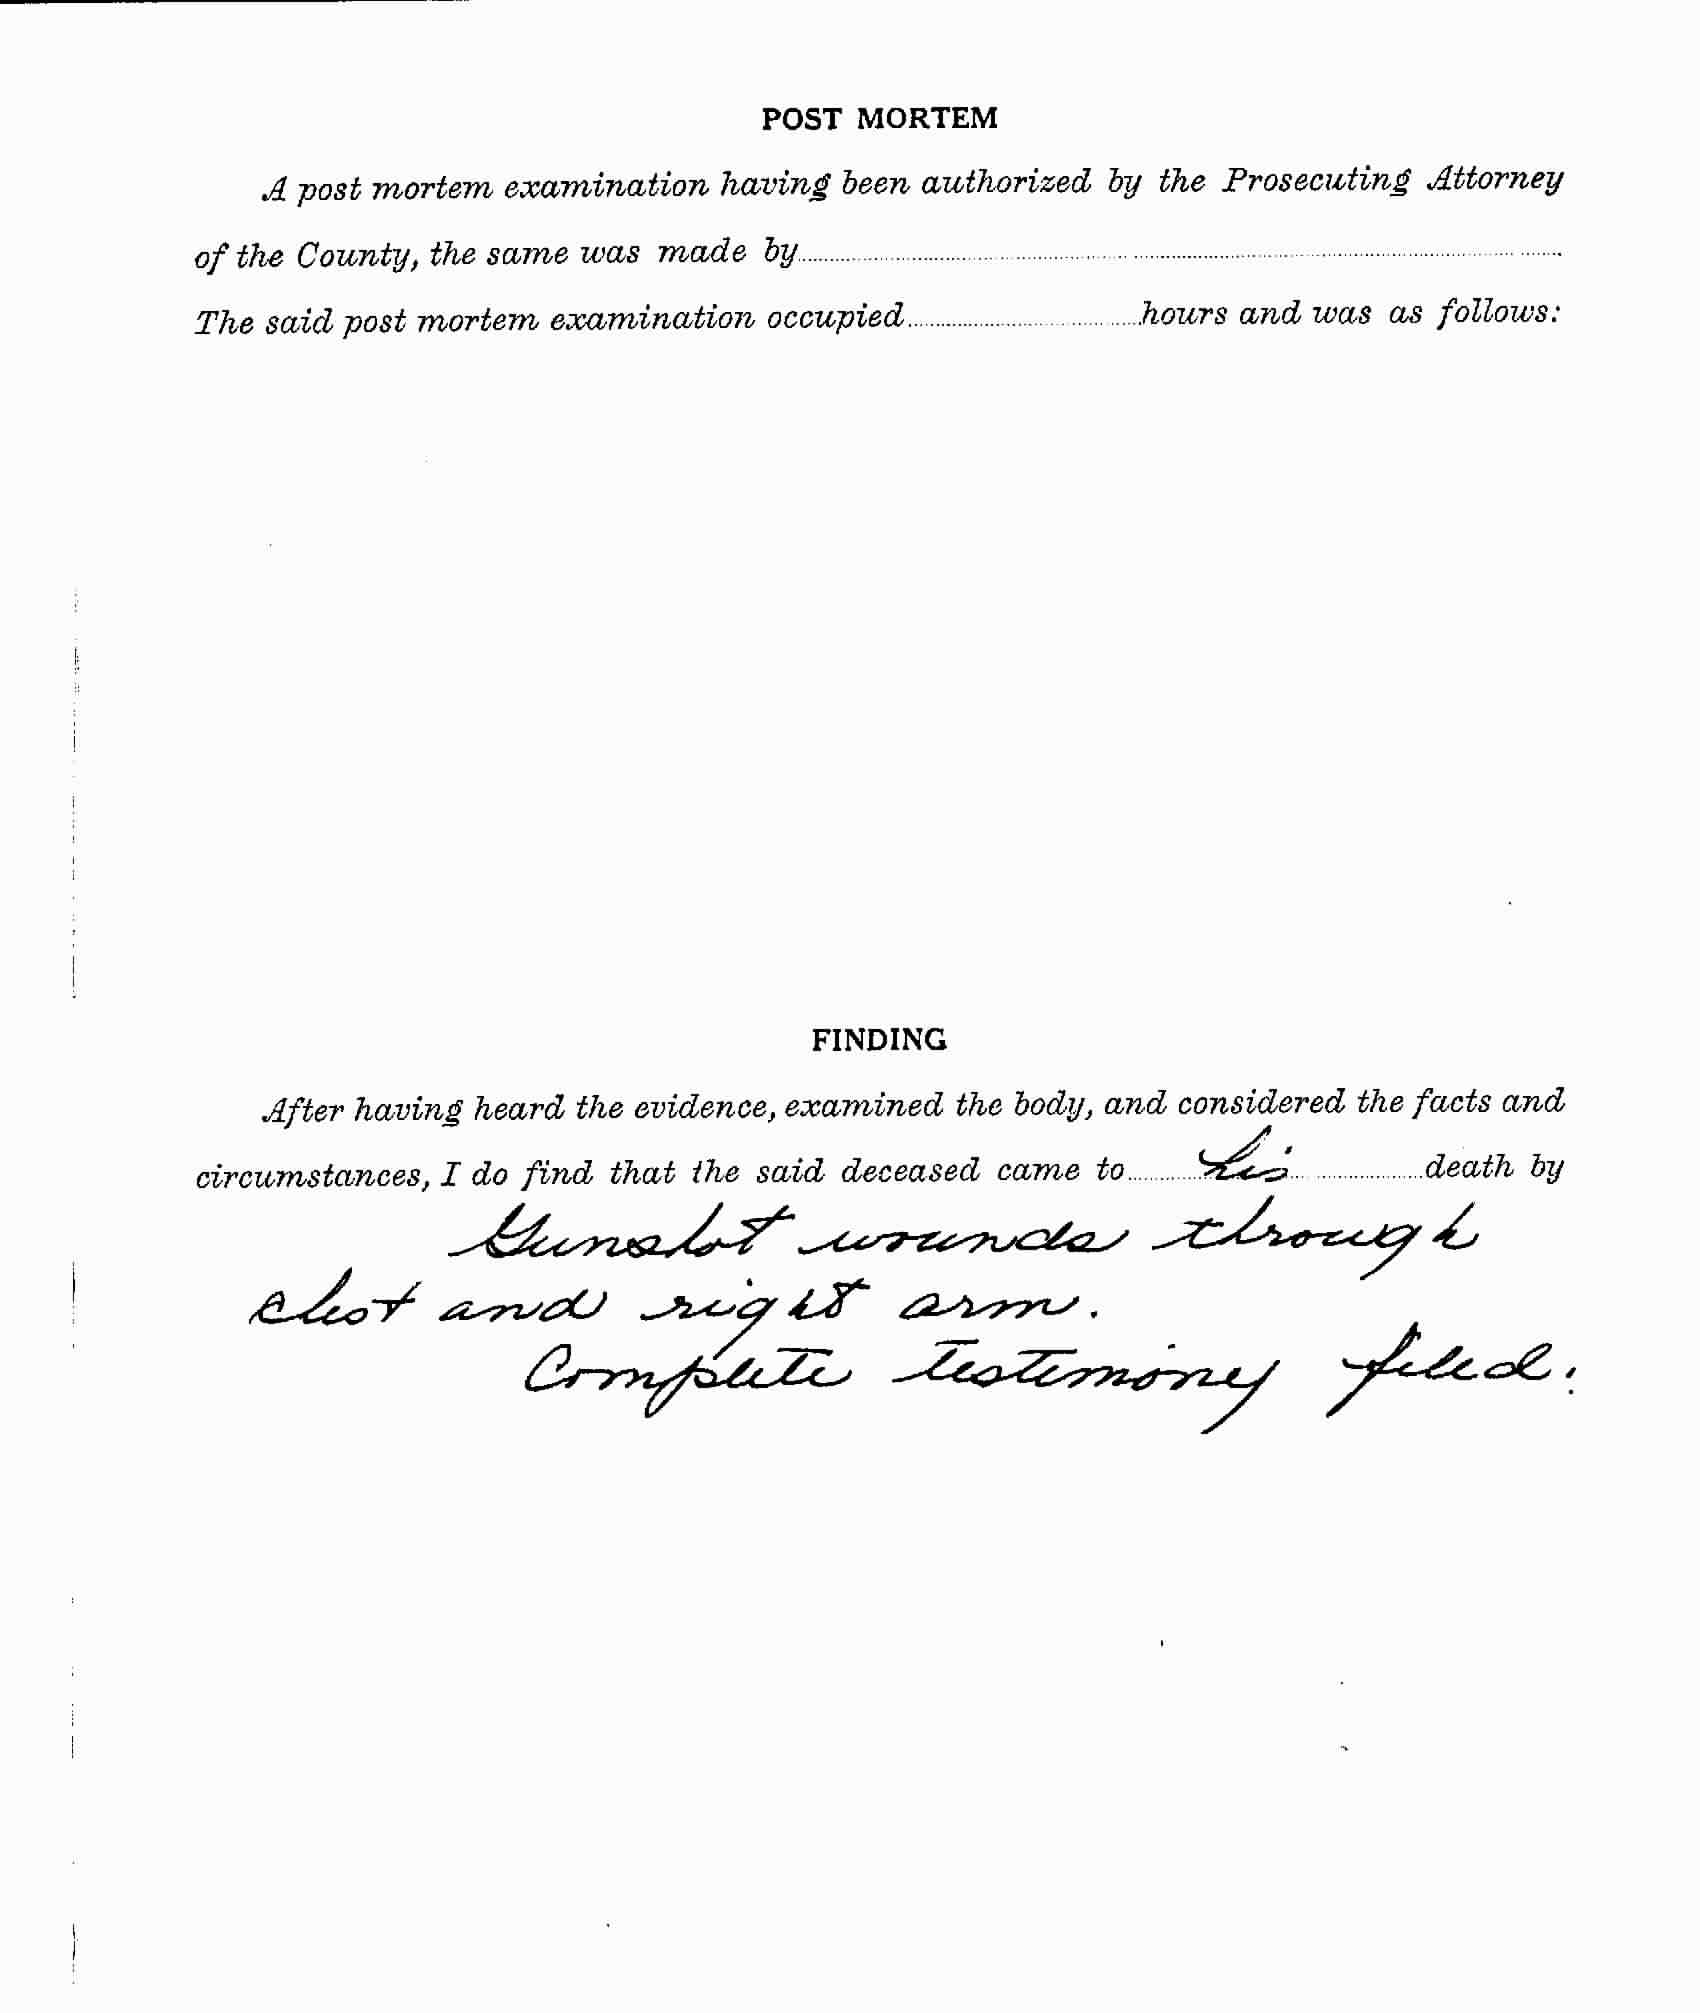 Page 4 of the Coroner's report